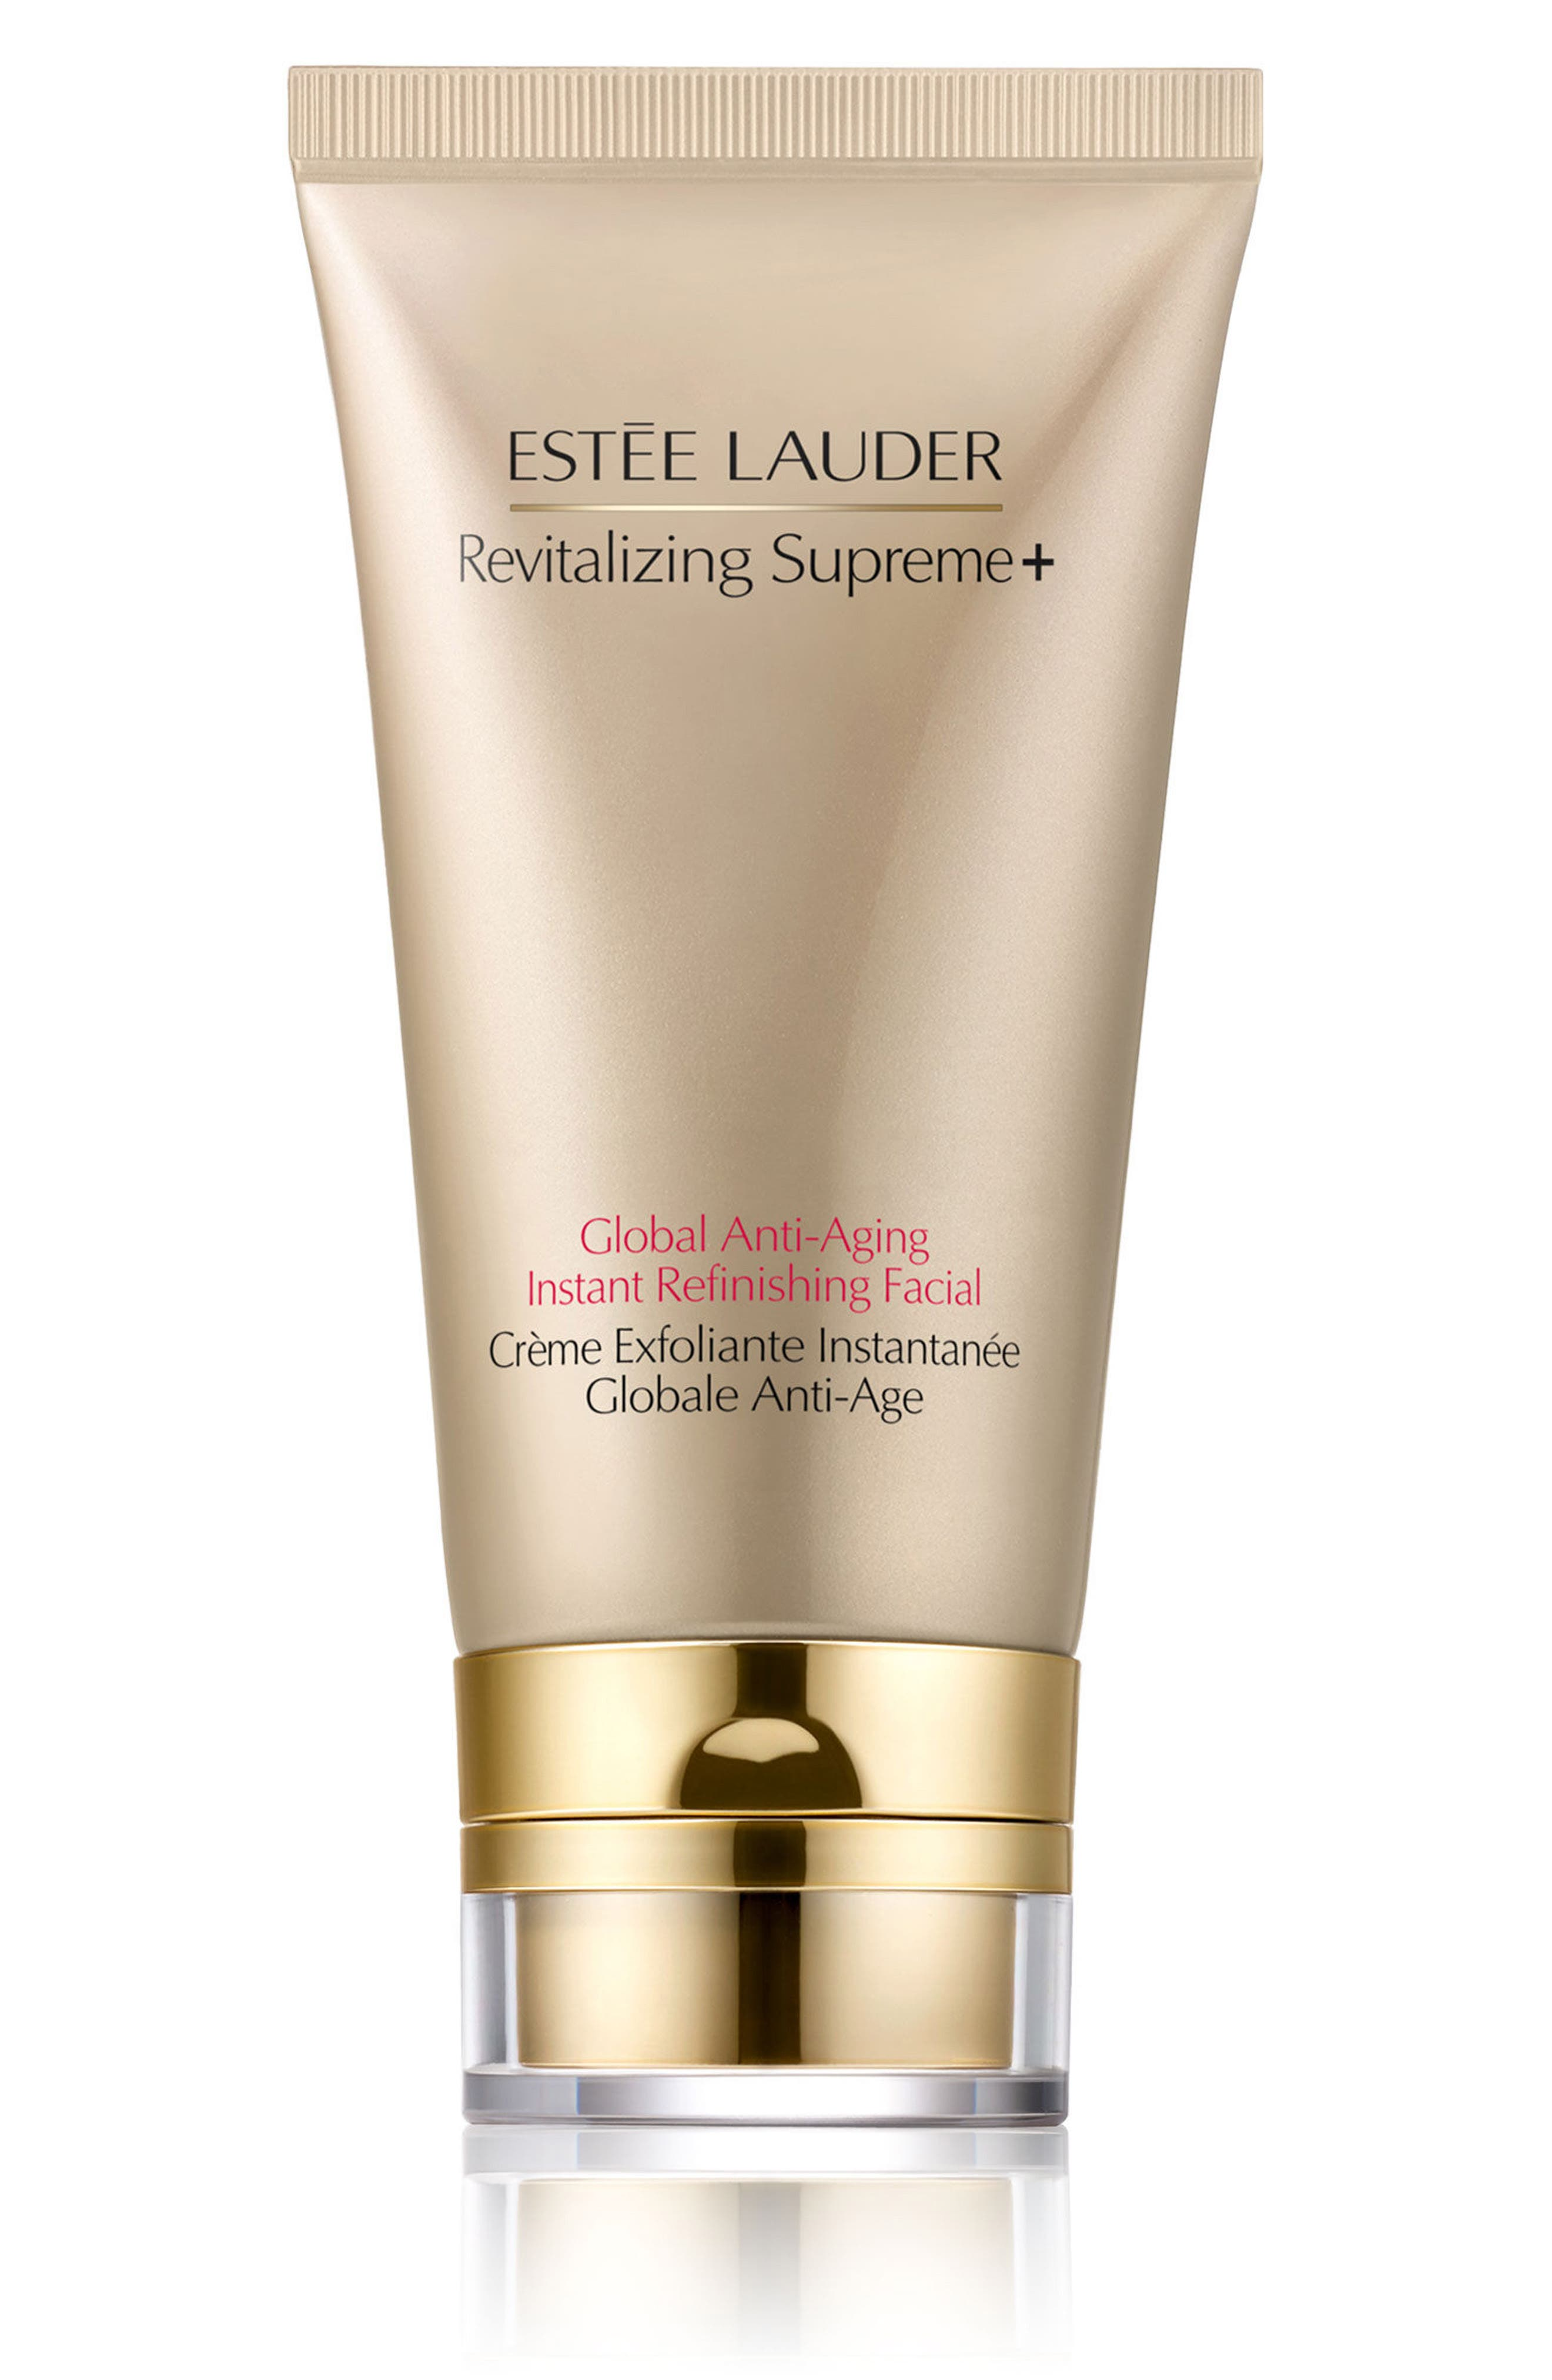 Estée Lauder Revitalizing Supreme+ Global Anti-Aging Instant Refinishing Facial